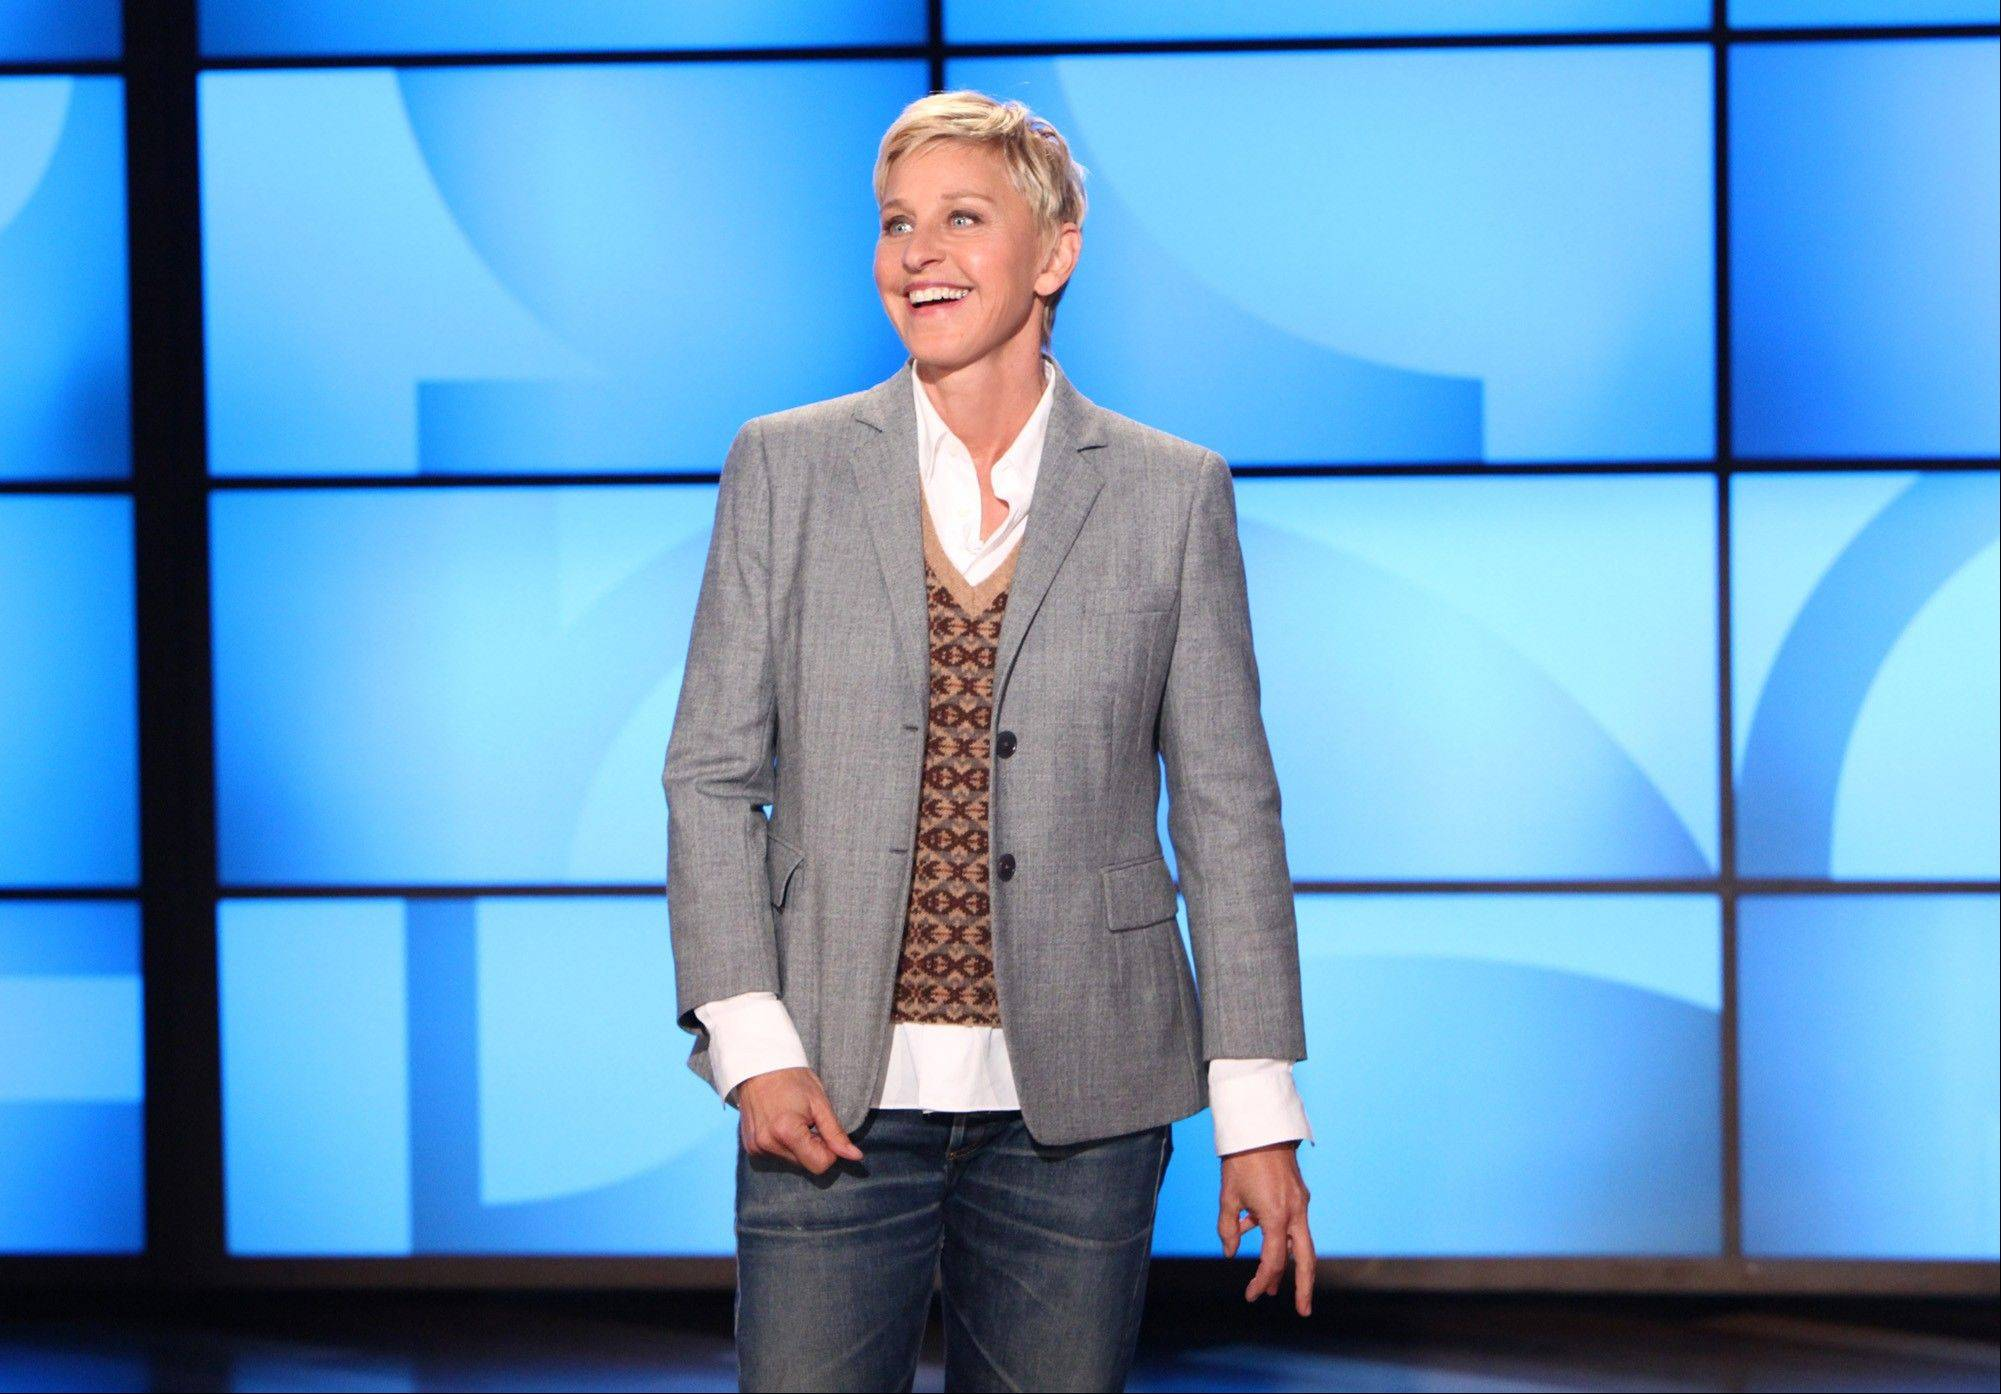 The Kennedy Center in Washington is awarding Ellen DeGeneres the Mark Twain Prize for American Humor on Monday. The show will be broadcast on PBS stations Oct. 30.